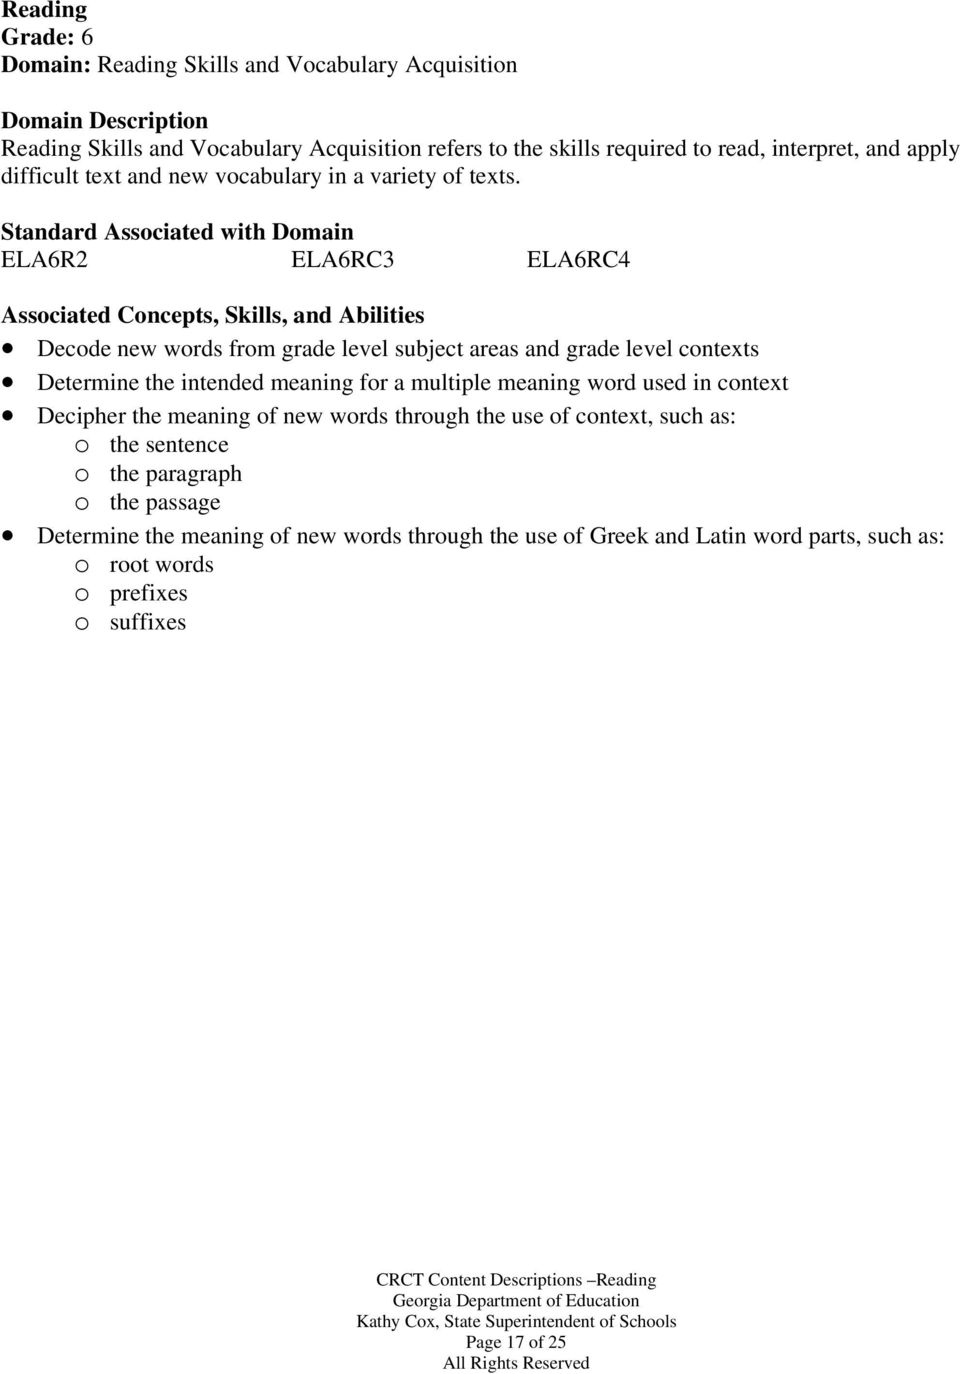 ELA6R2 ELA6RC3 ELA6RC4 Decode new words from grade level subject areas and grade level contexts Determine the intended meaning for a multiple meaning word used